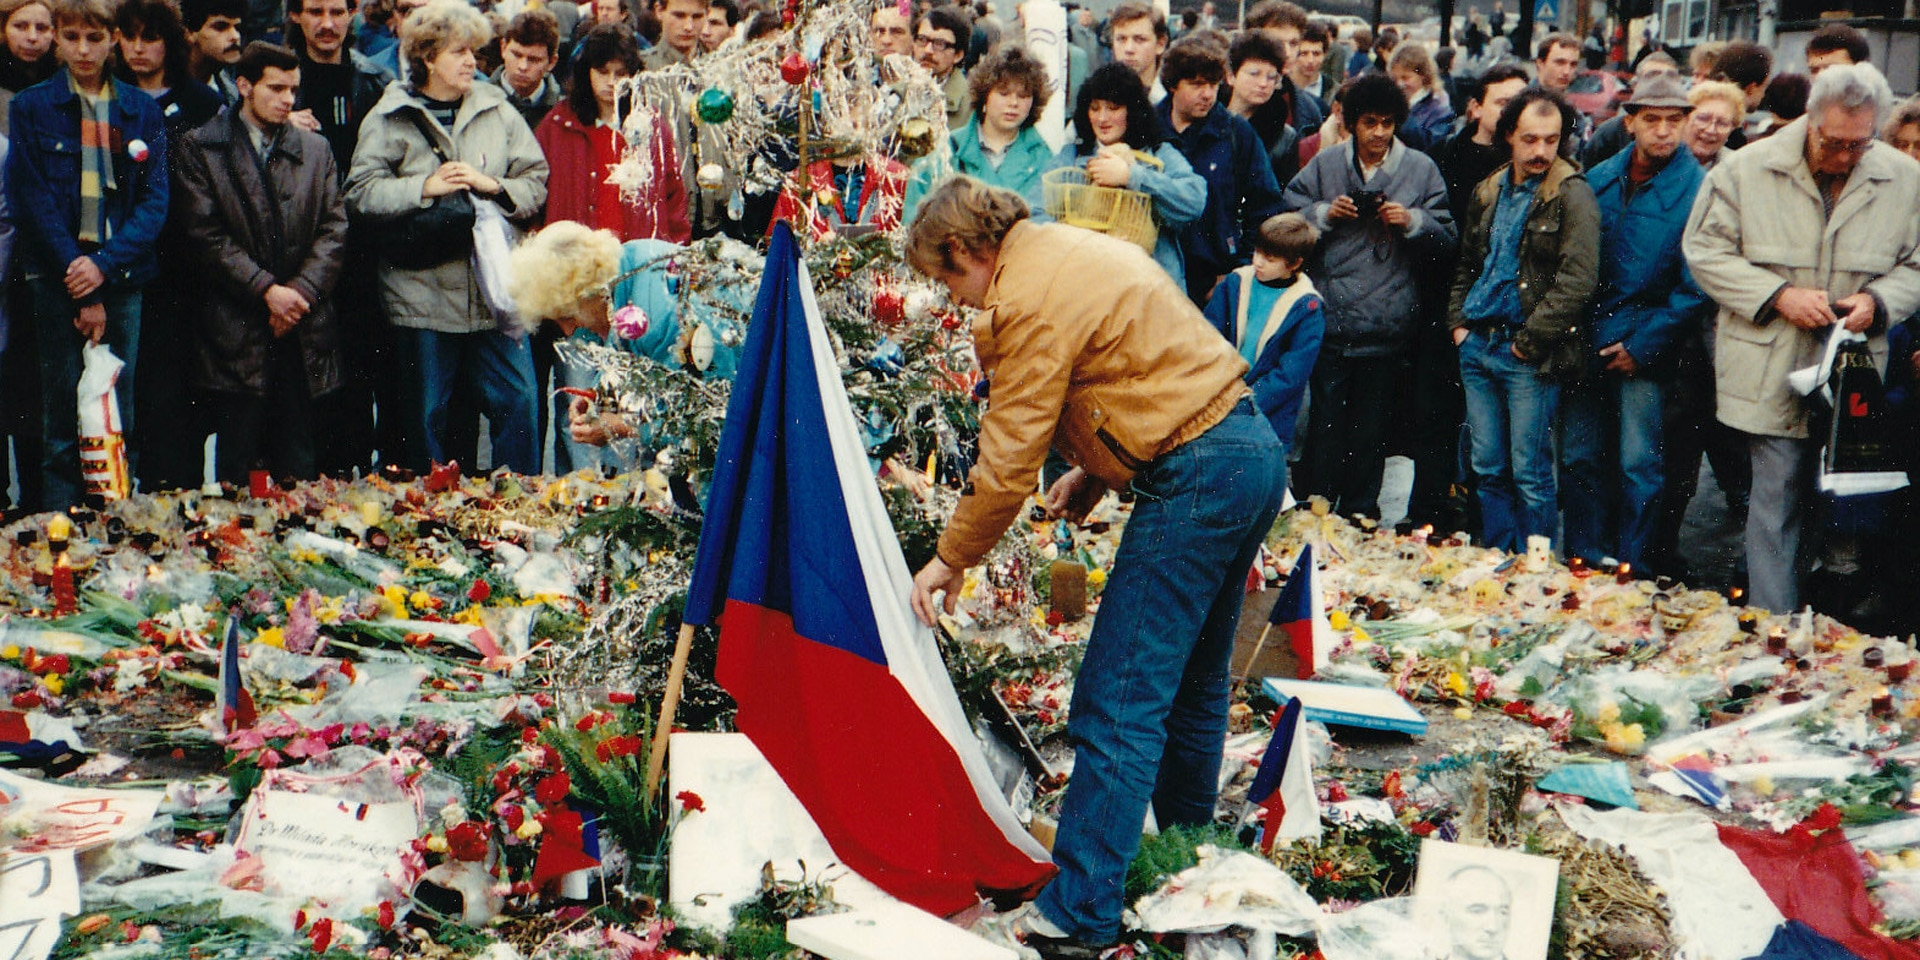 Surrounded by a crowd, Václav Havel lays flowers on Wenceslas Square.